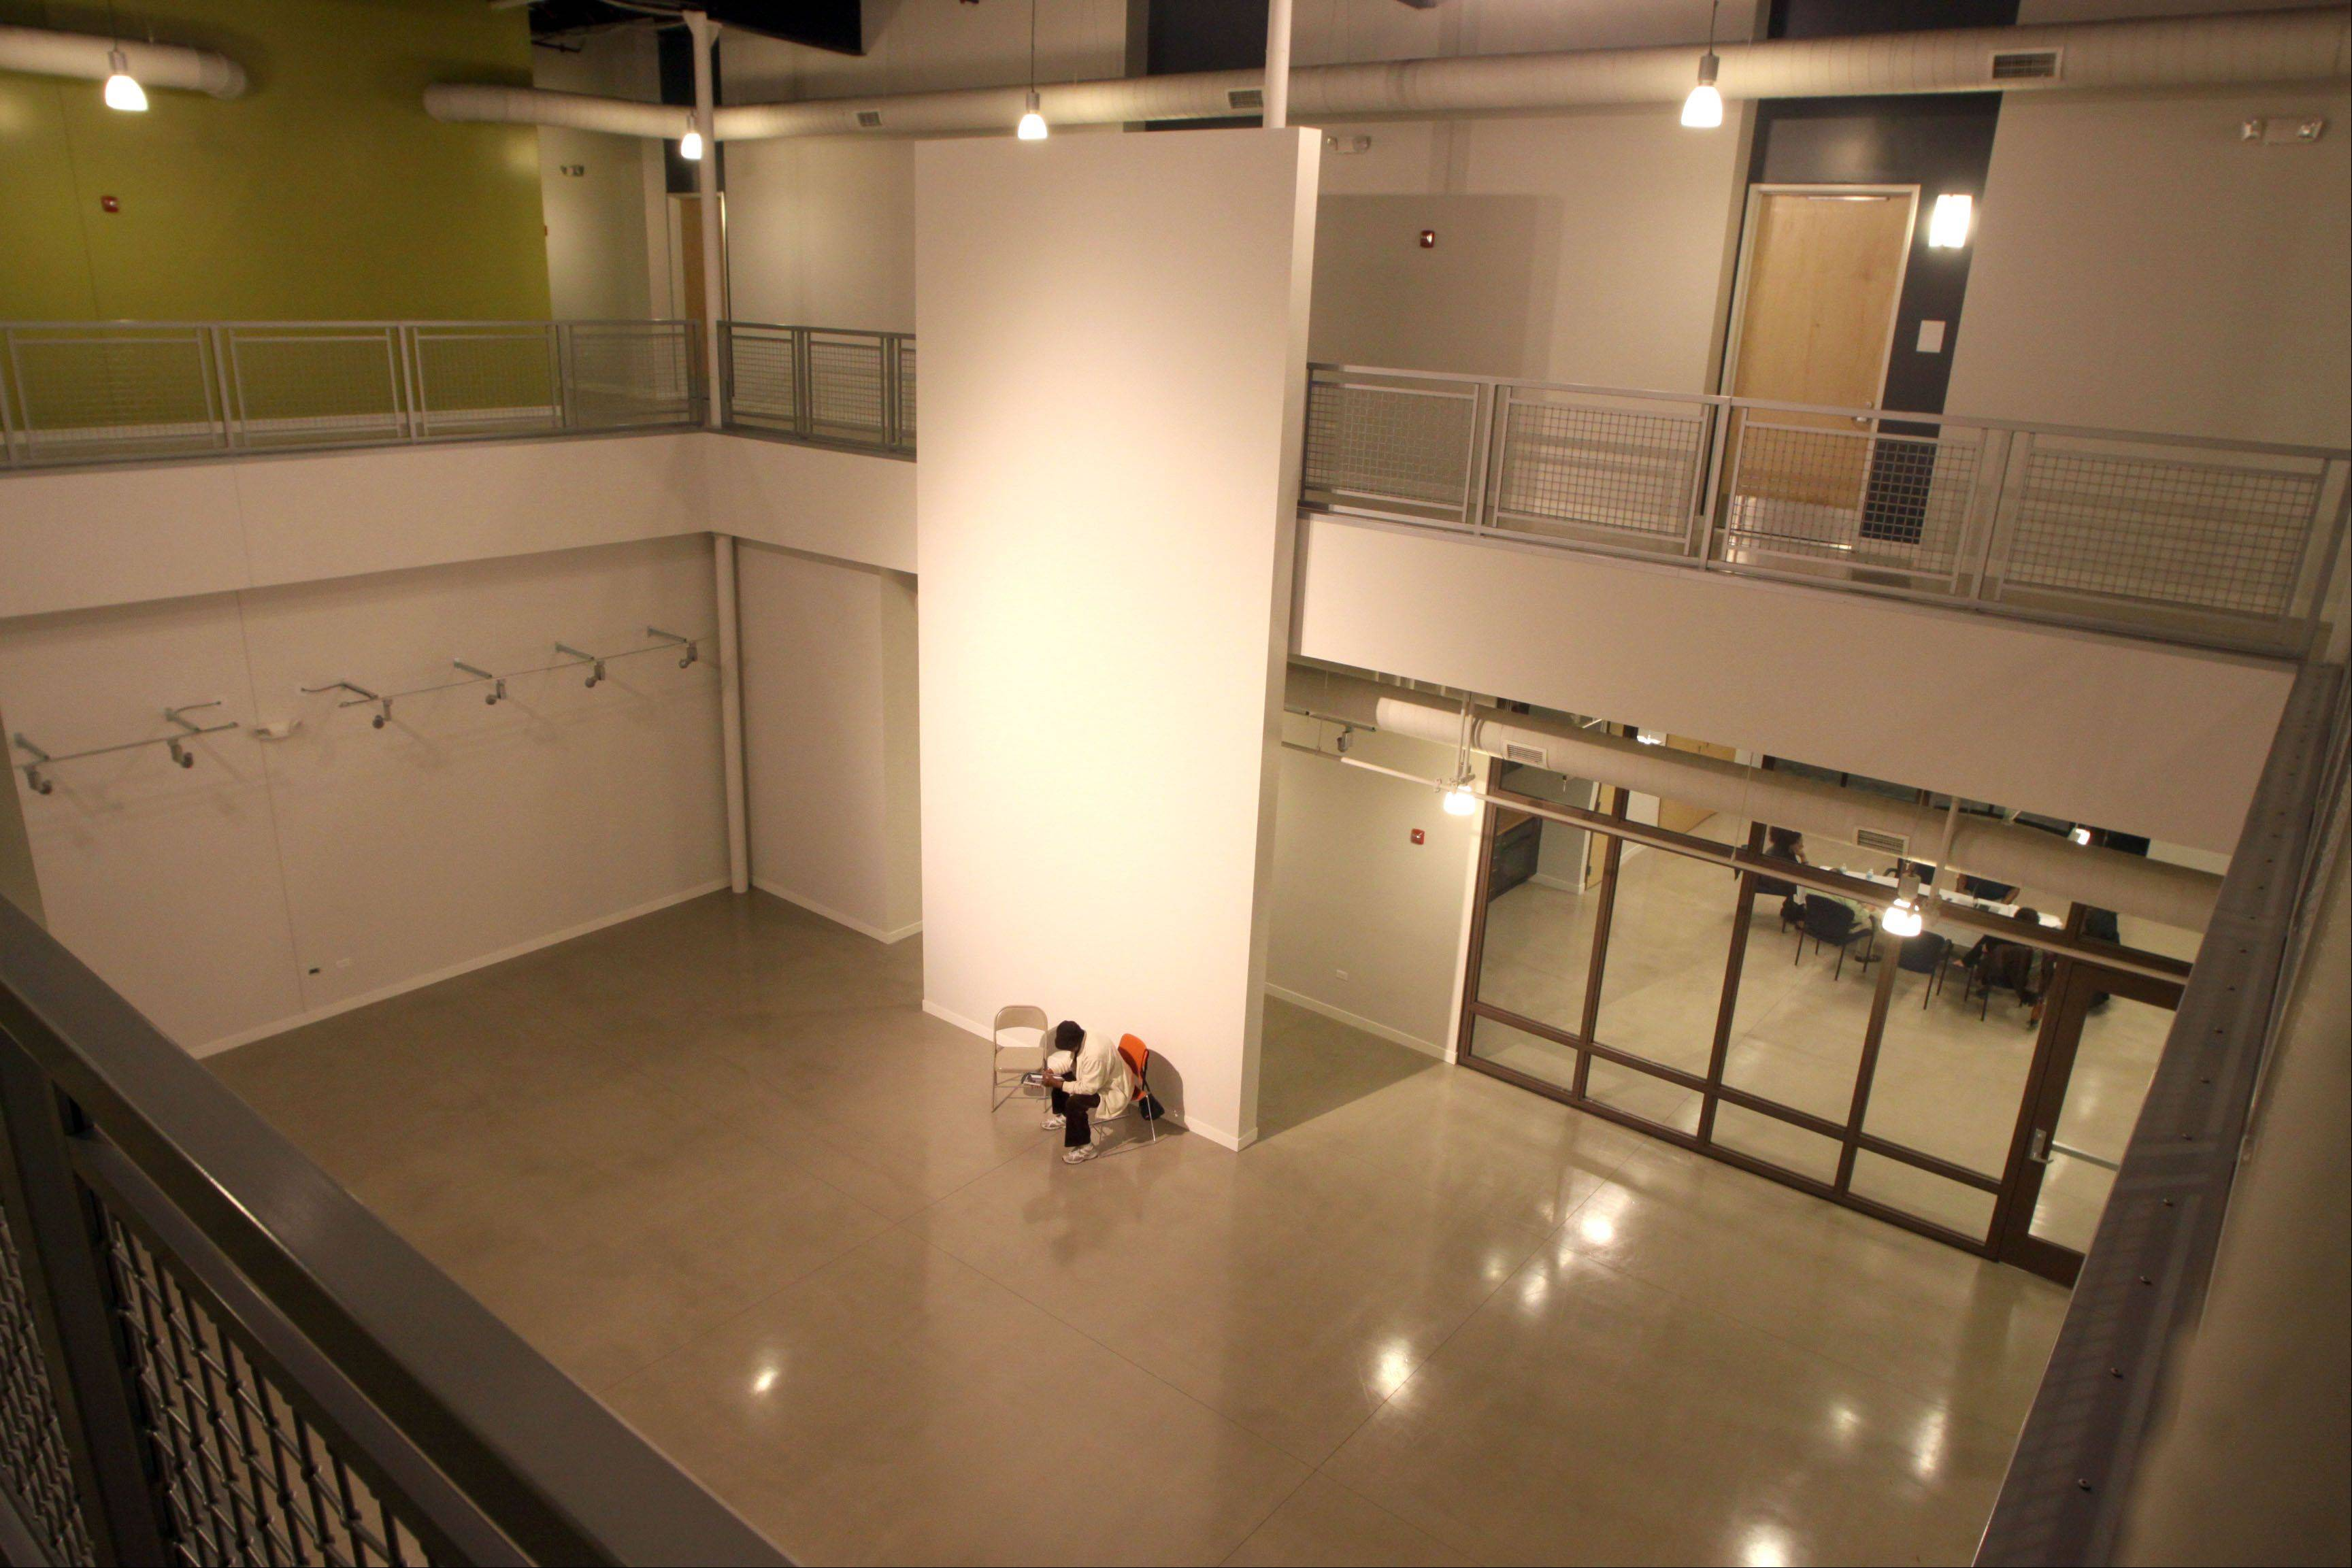 Tenants began moving in October to Elgin Artspace Lofts along Spring Street and the last of the 55 units was rented in recent weeks. The complex features an art gallery, pictured here.